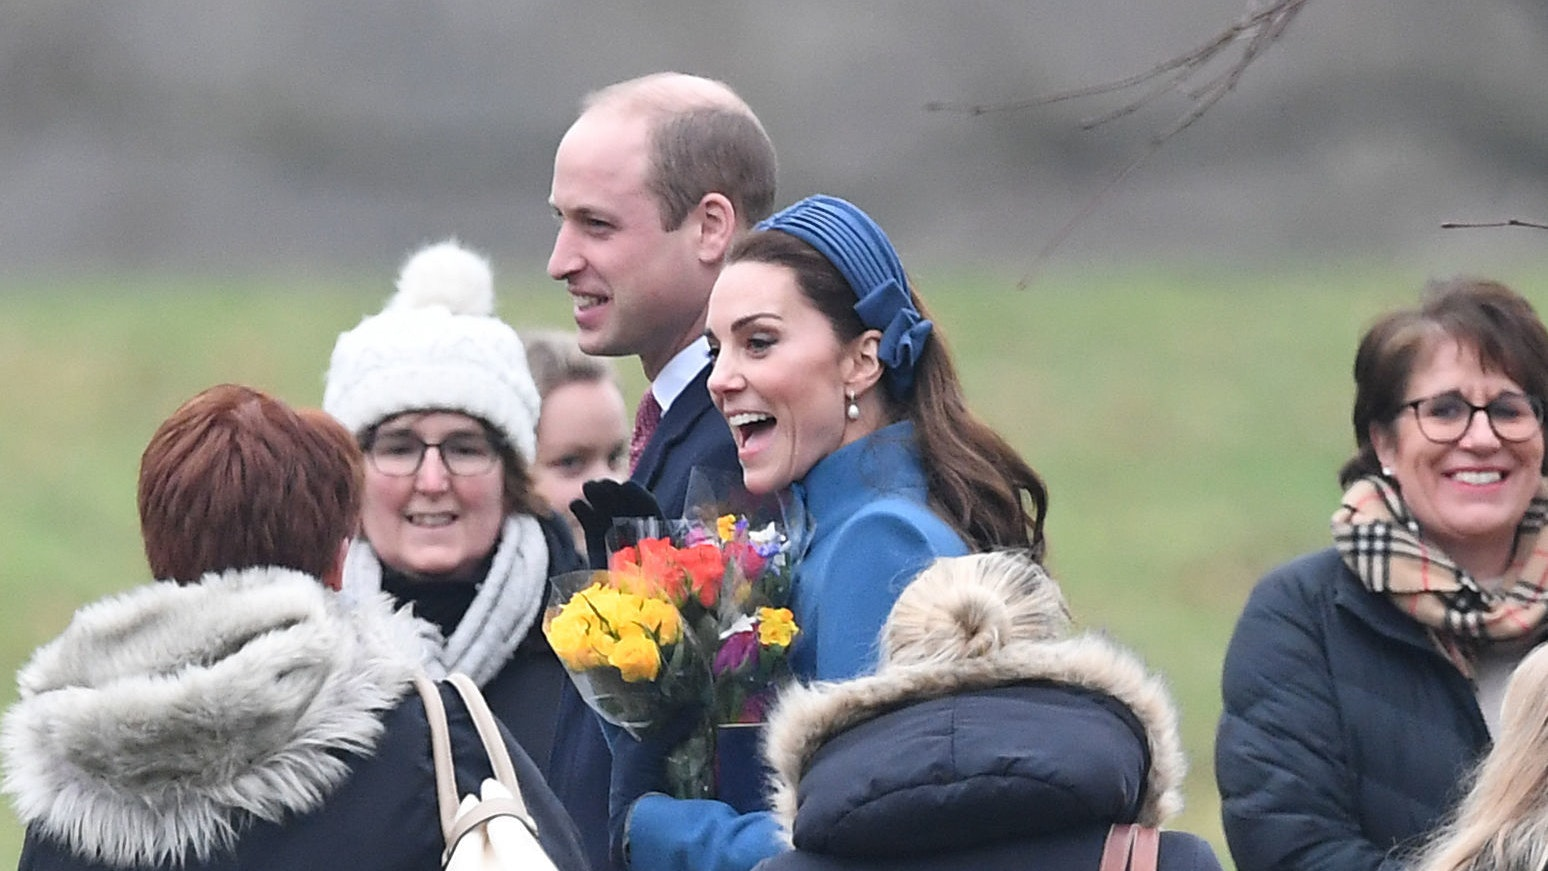 The Duchess of Cambridge turns 37